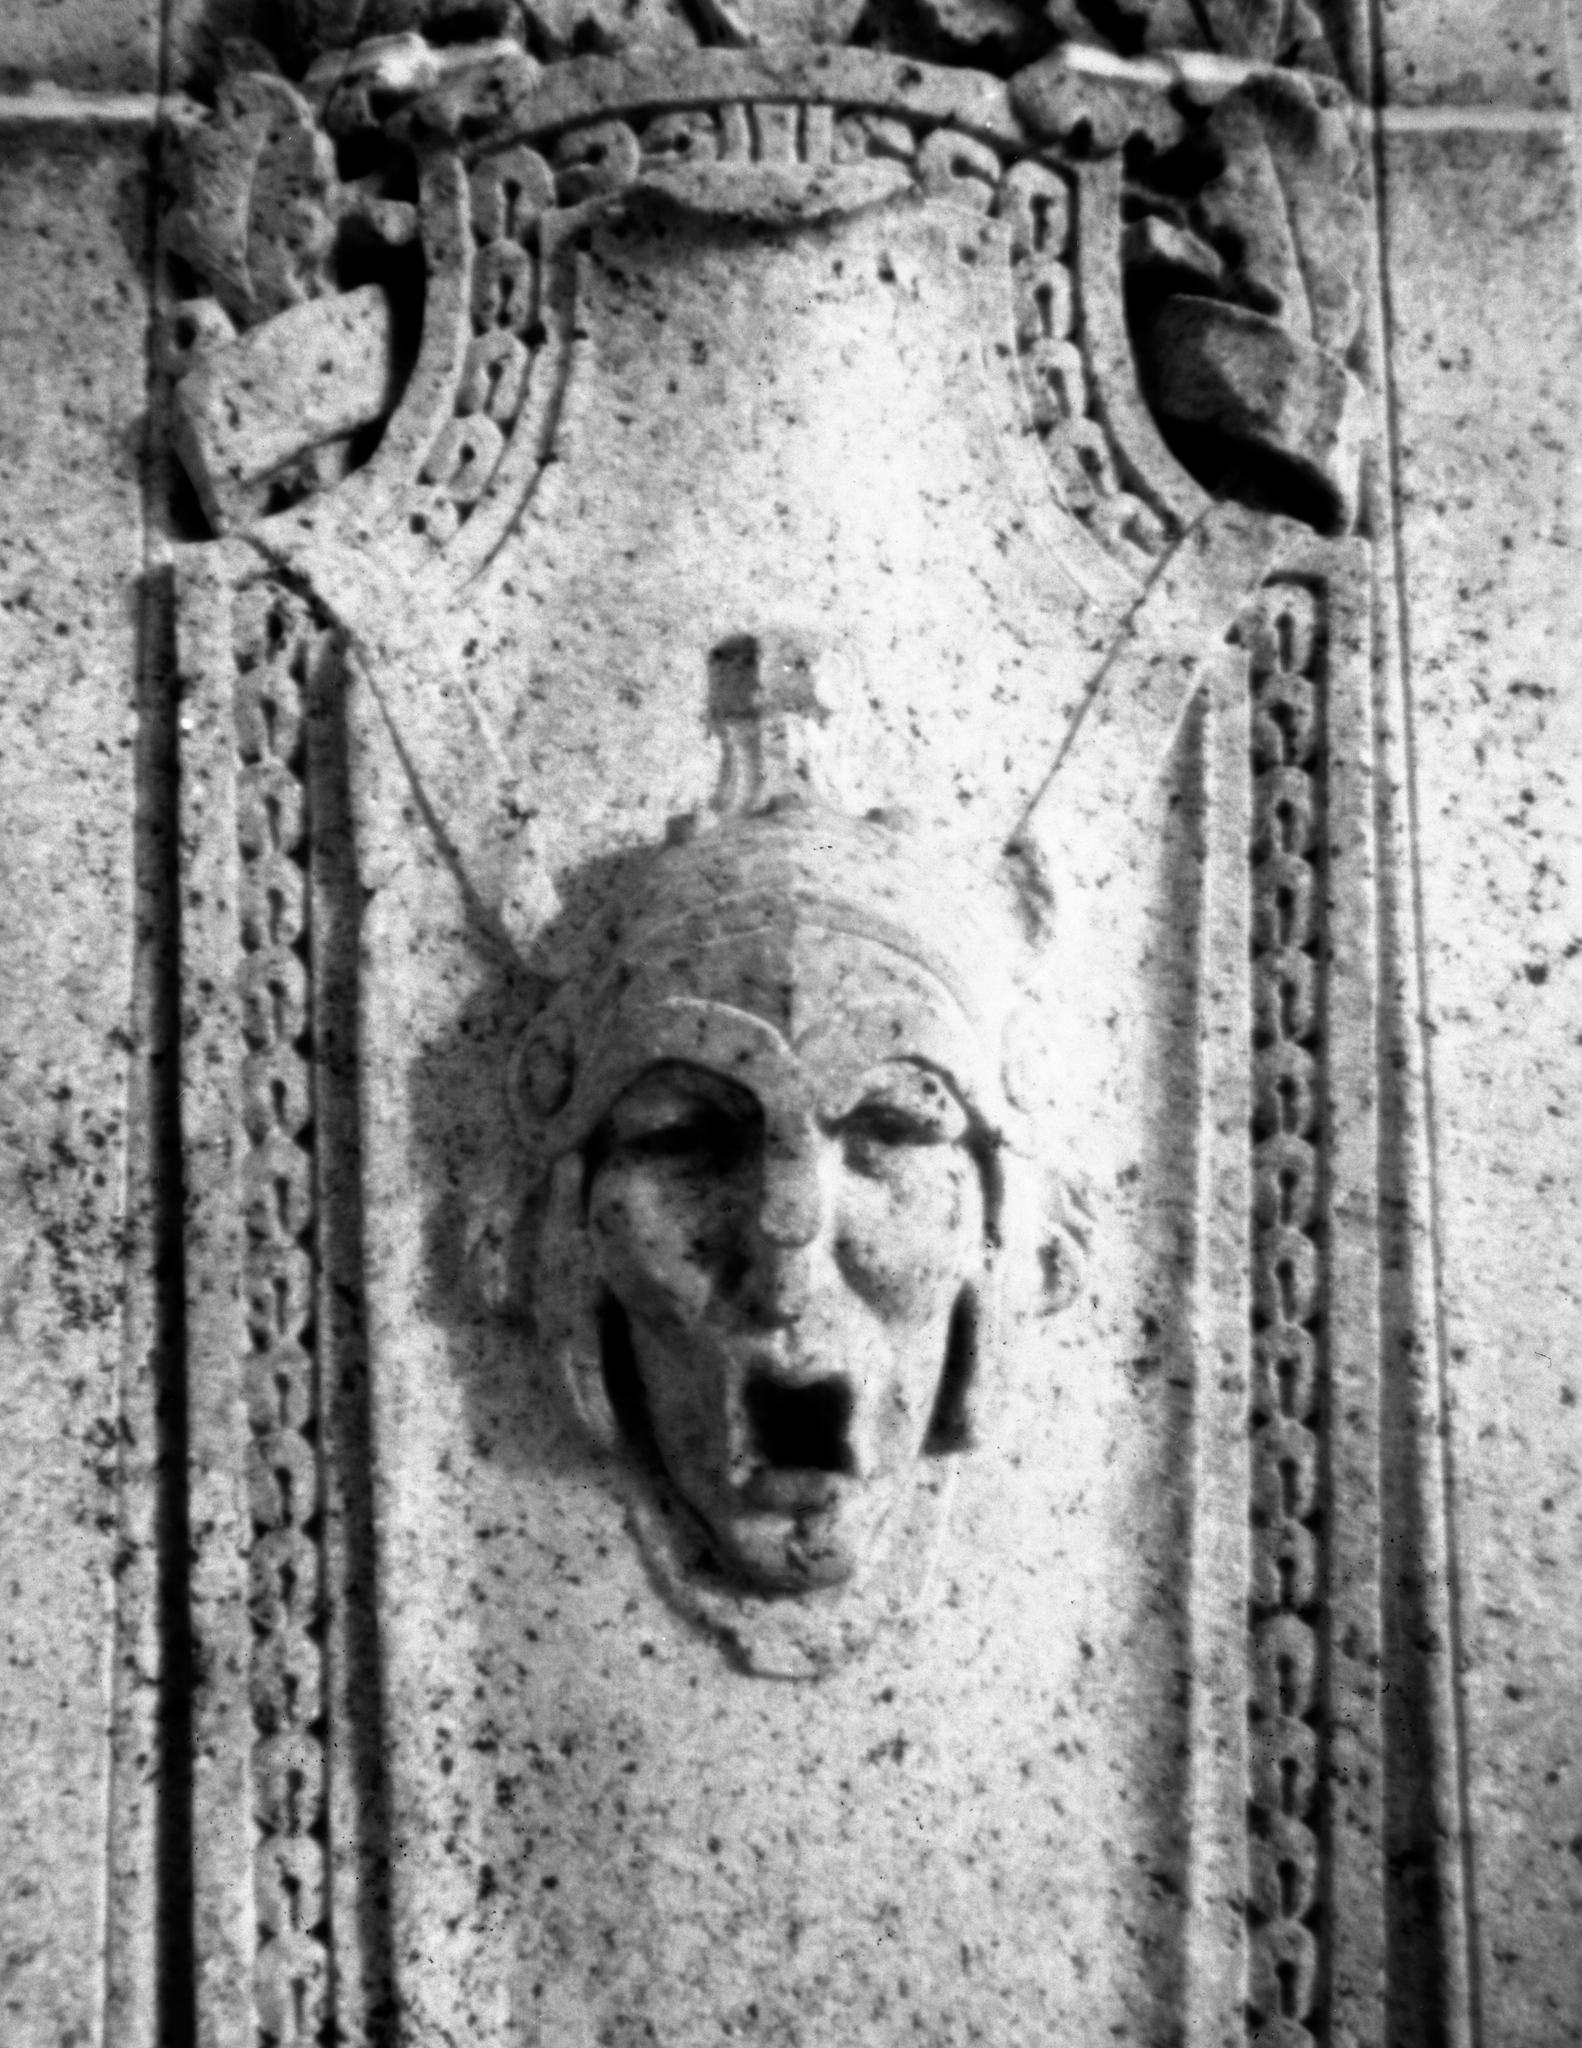 4x5_for_365_project_064_Valley_Forge_arch_face.jpg